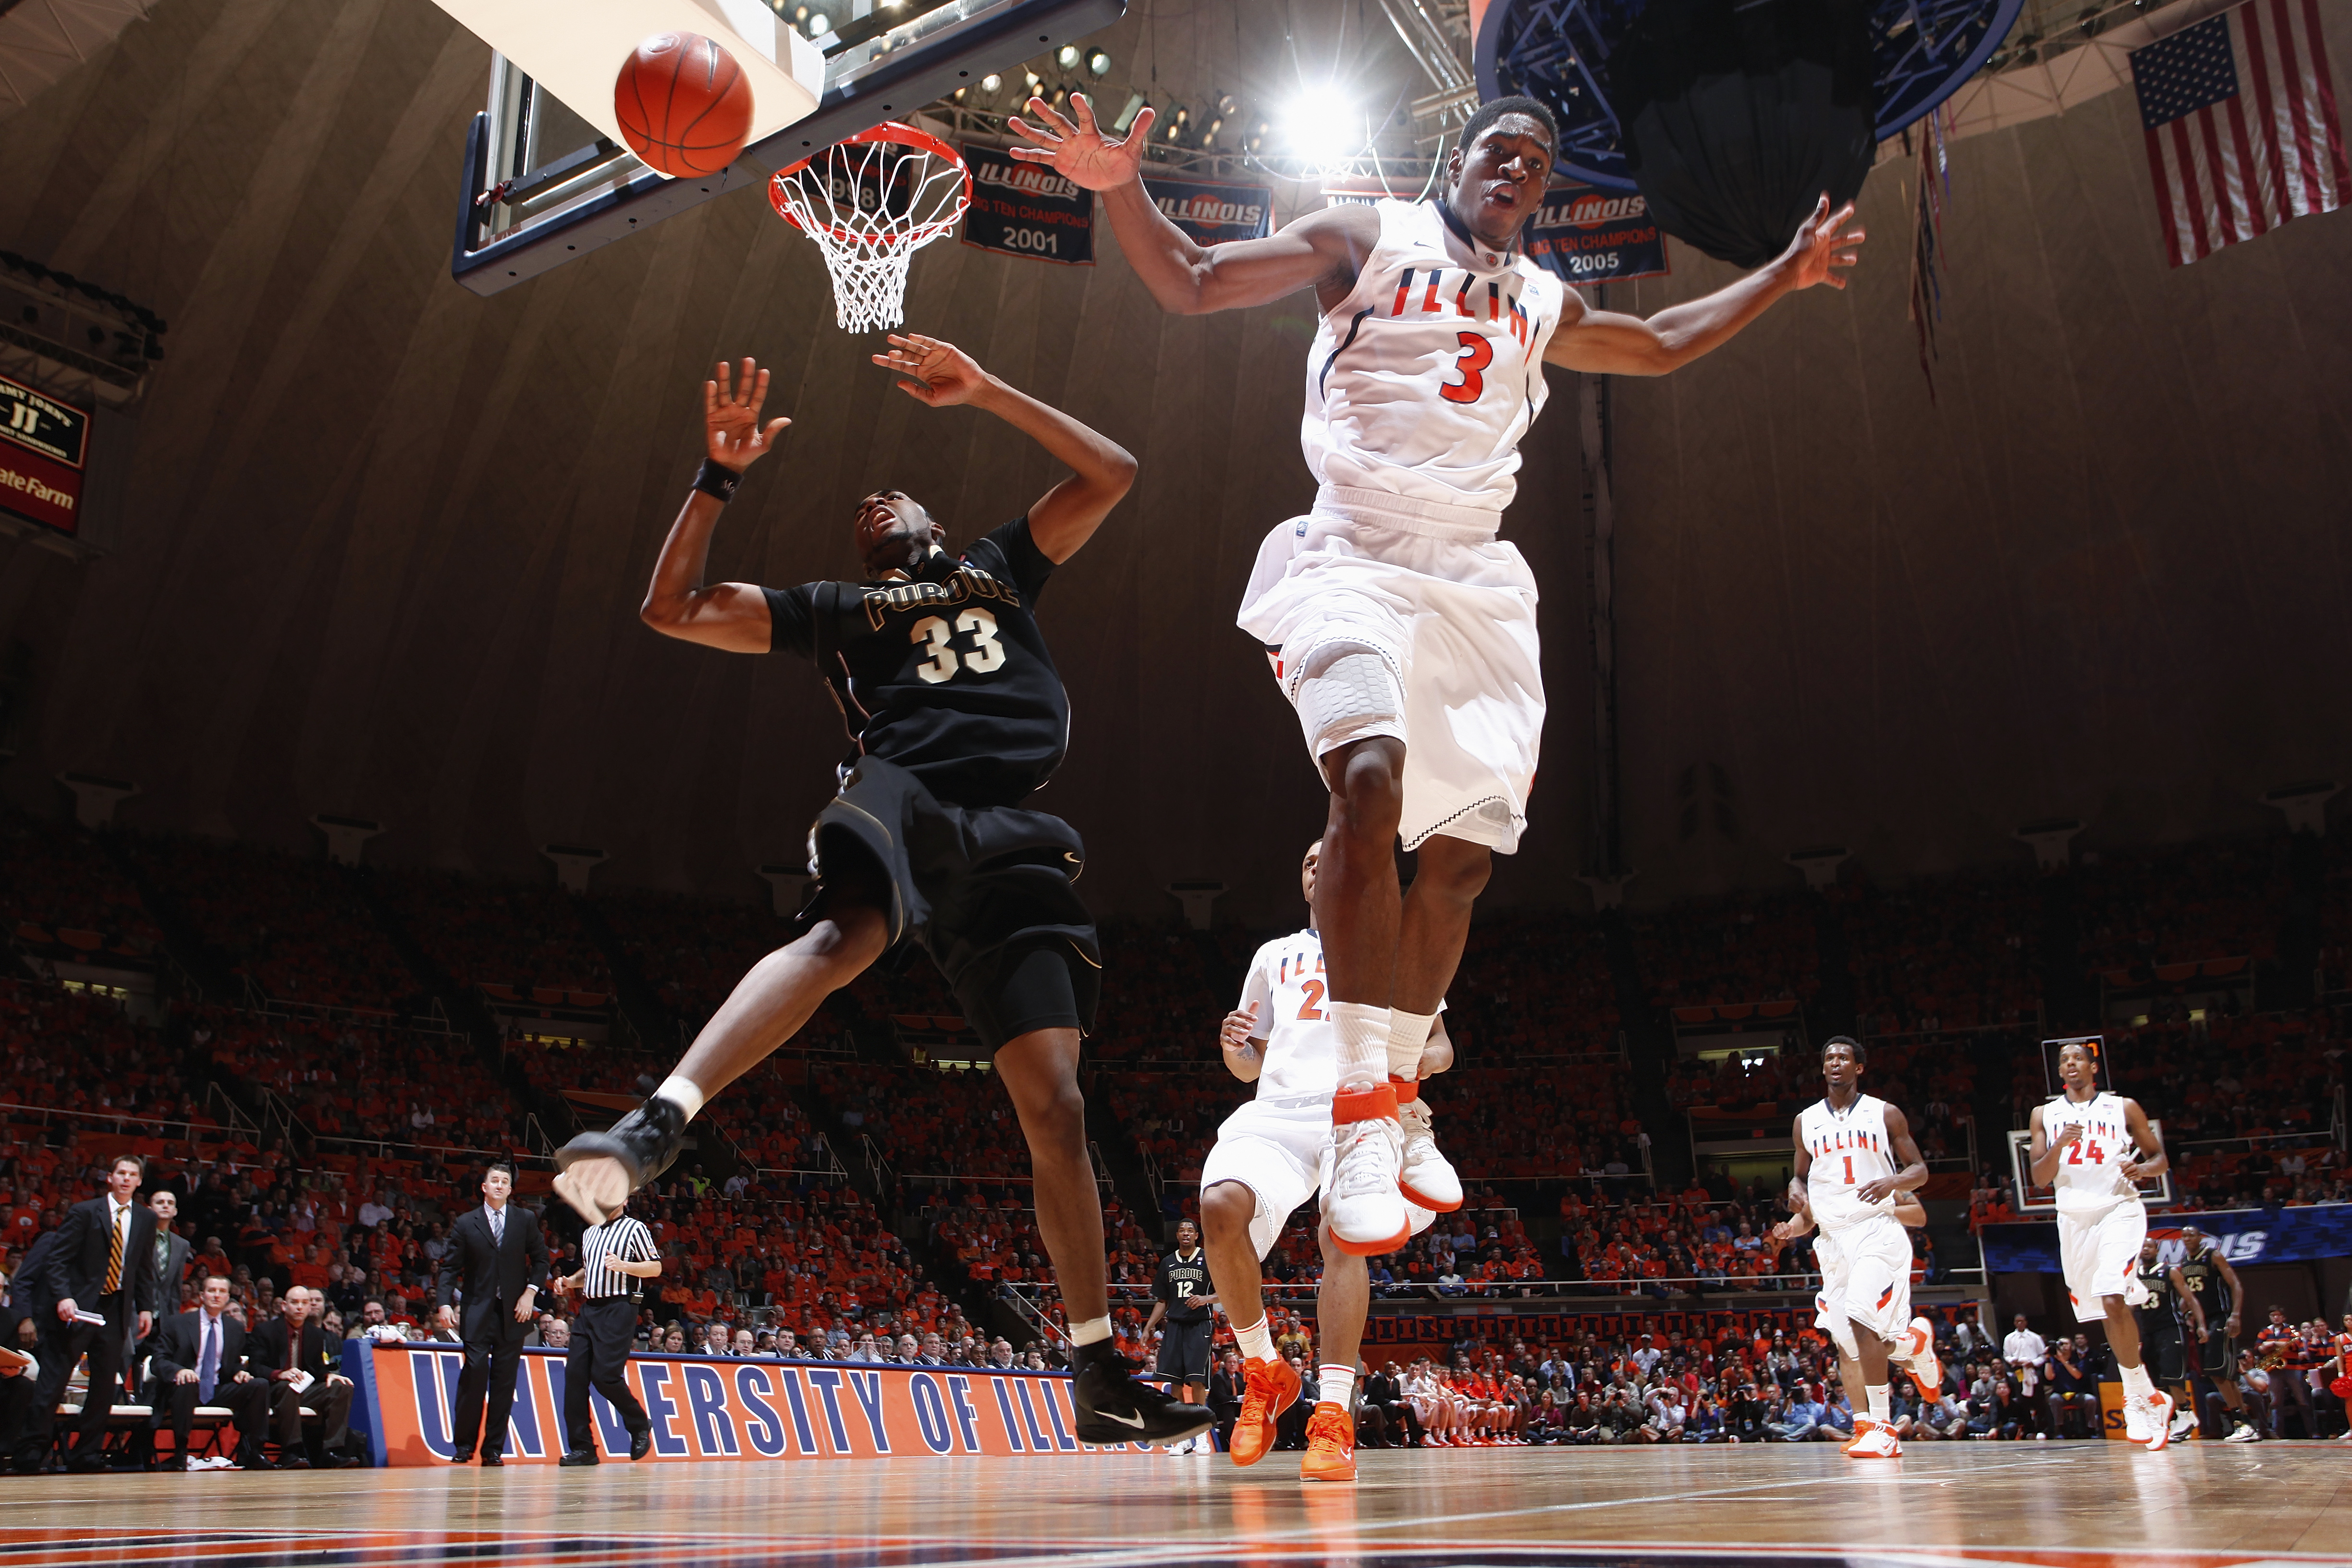 CHAMPAIGN, IL - FEBRUARY 13: Brandon Paul #3 of the Illinois Fighting Illini blocks a layup by E'Twaun Moore #33 of the Purdue Boilermakers at Assembly Hall on February 13, 2011 in Champaign, Illinois. Purdue defeated Illinois 81-70. (Photo by Joe Robbins